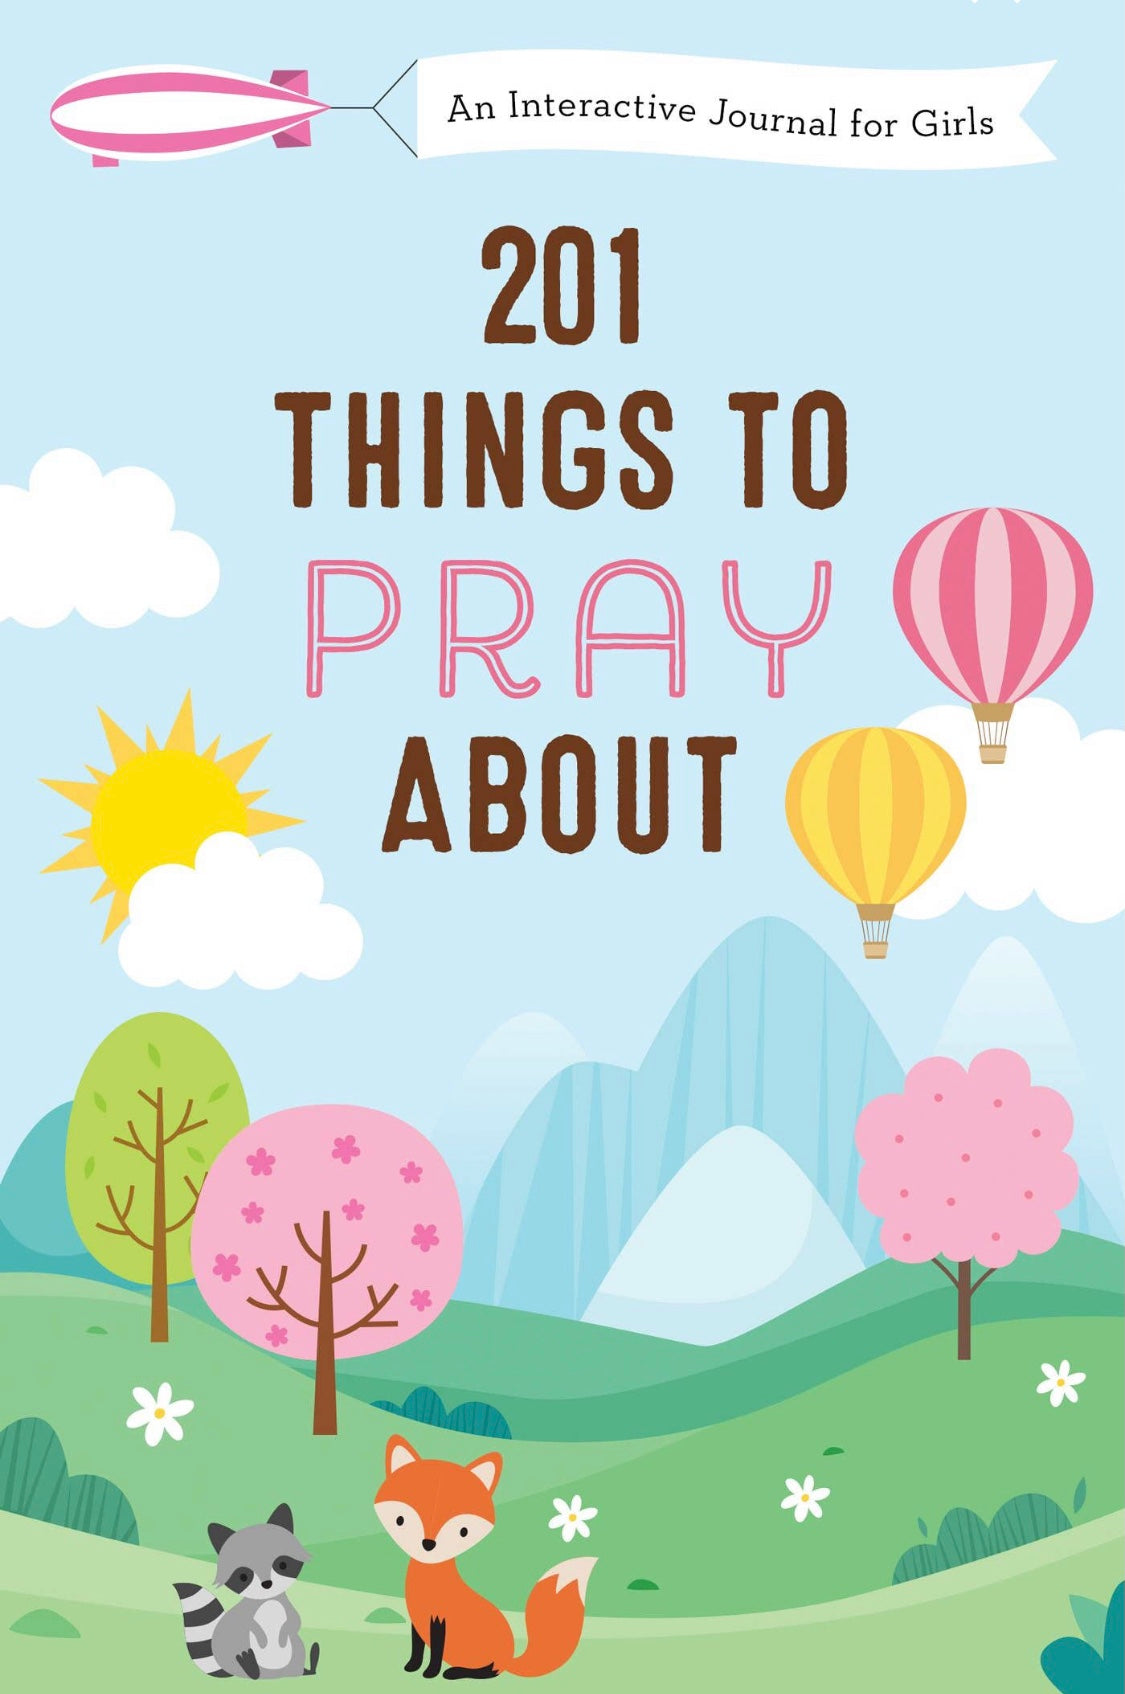 201 Things to Pray About for Girls